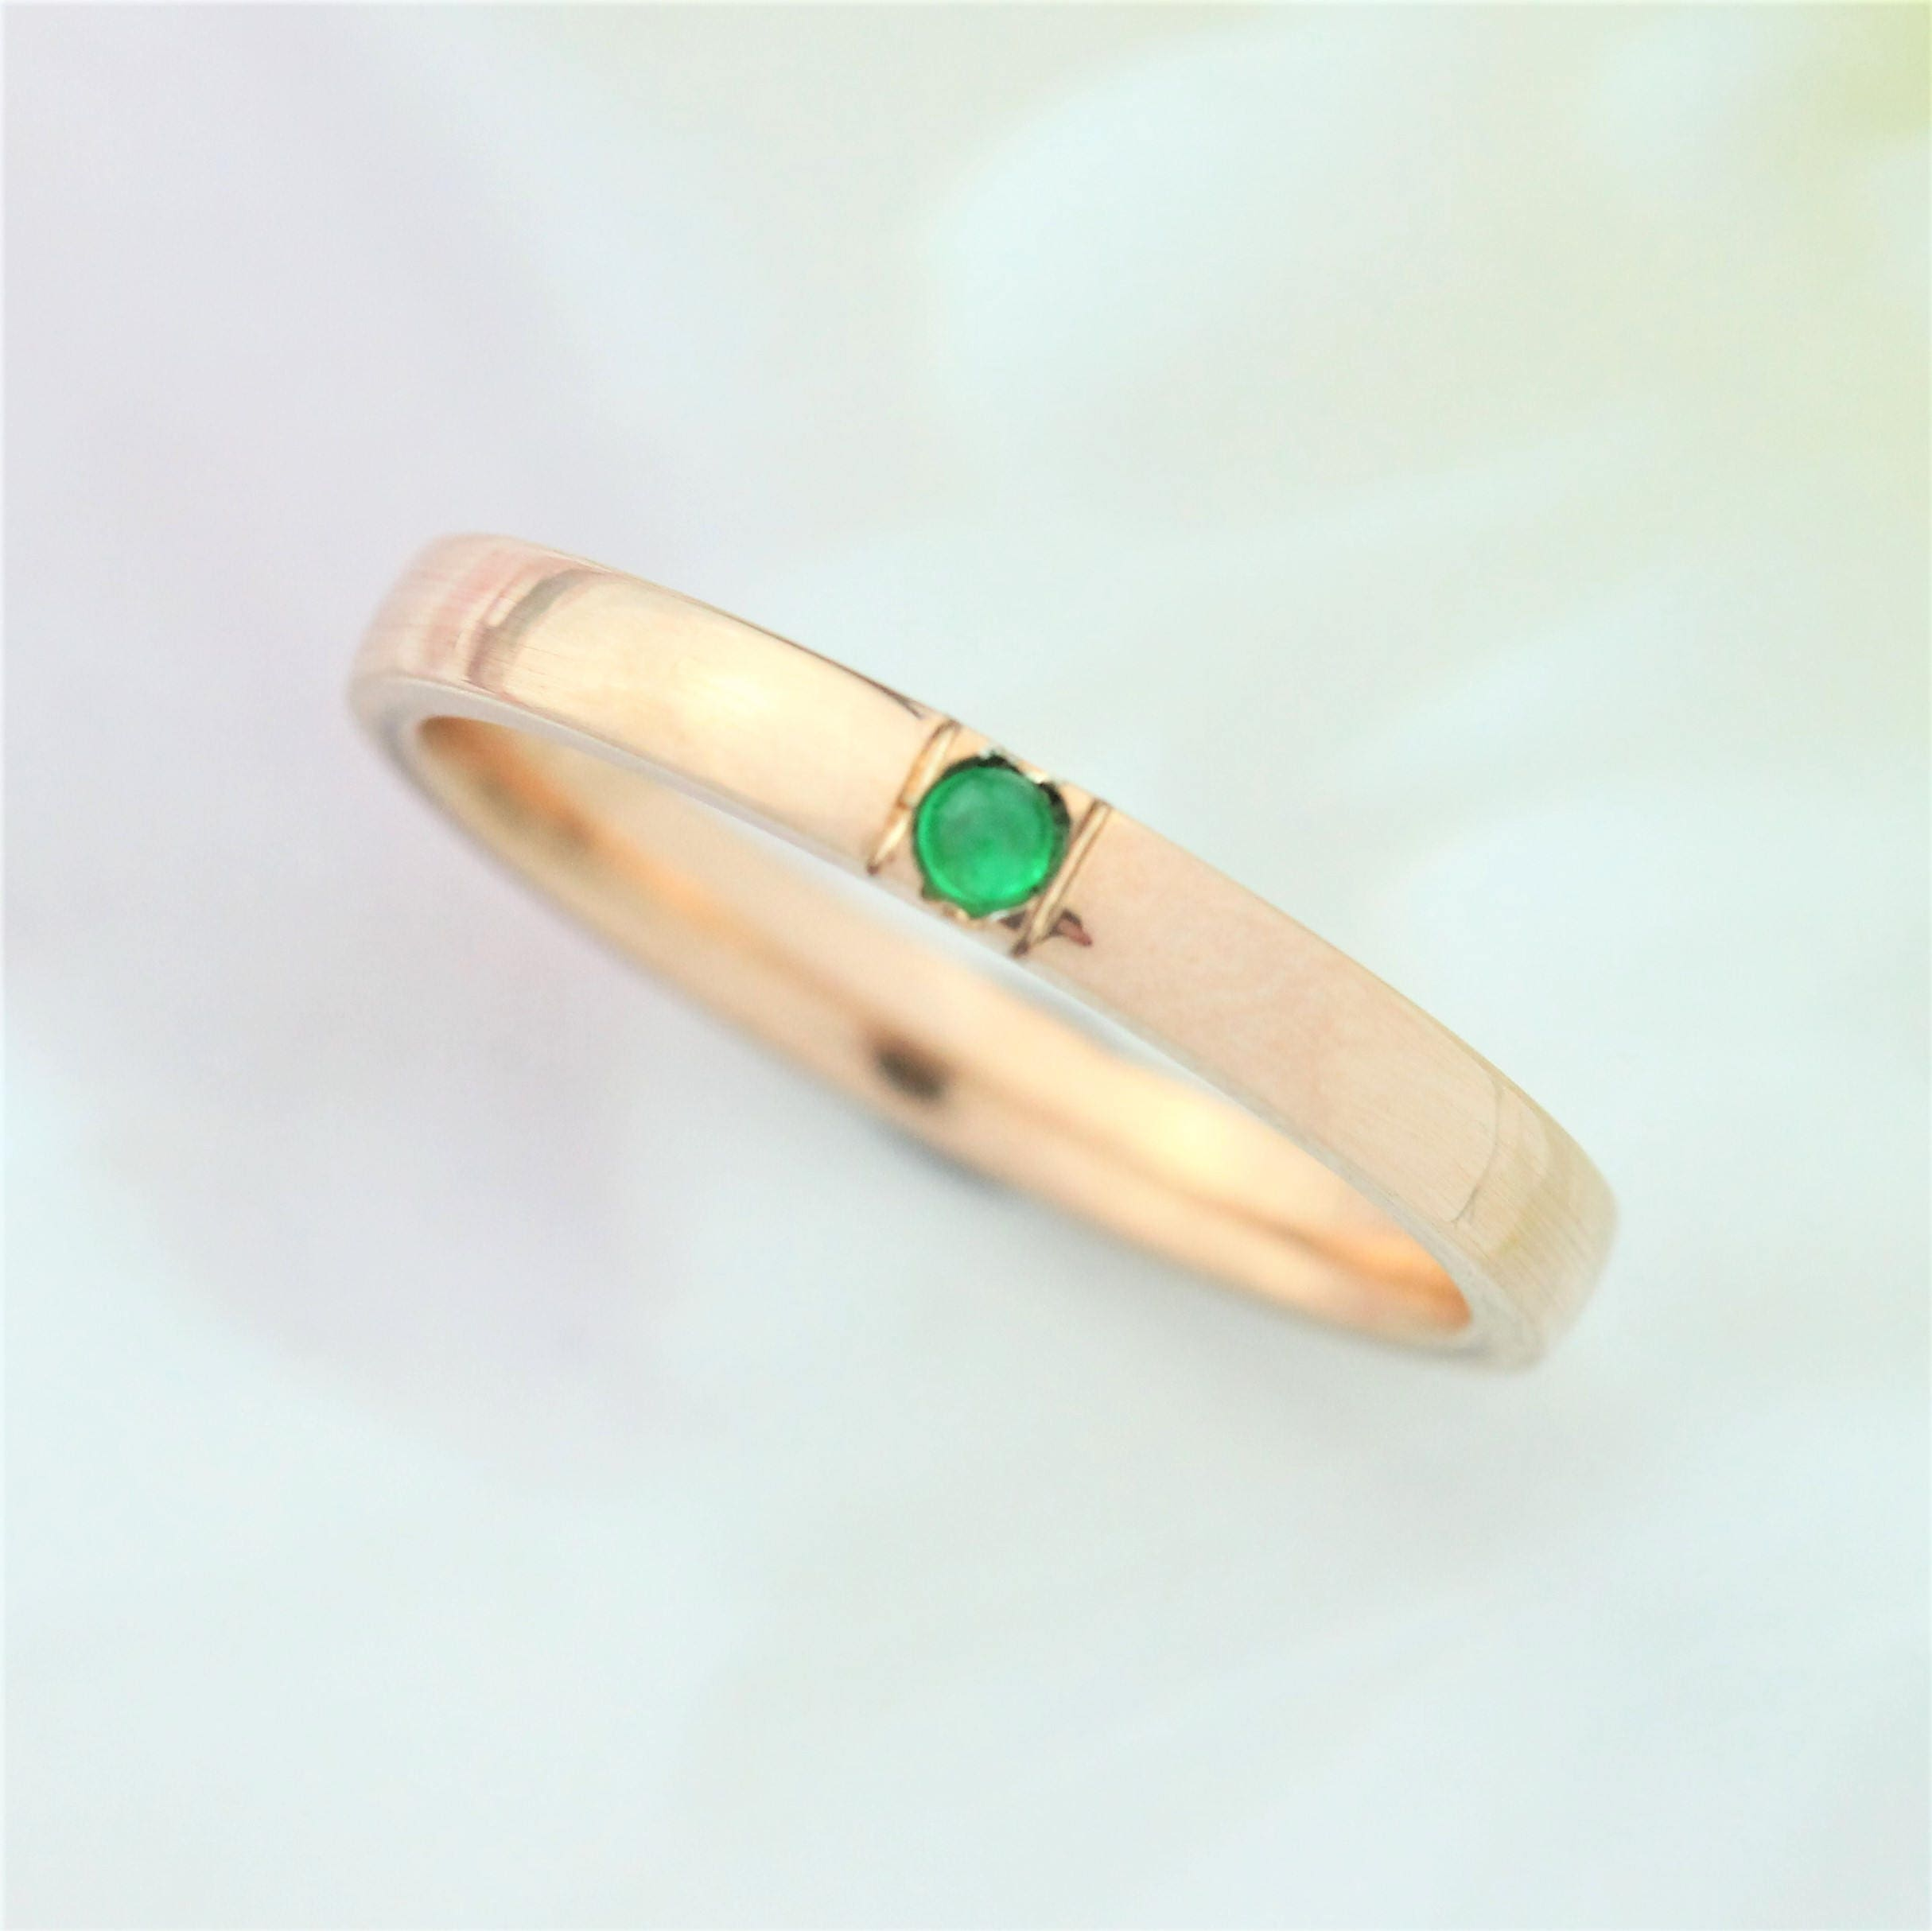 emerlad stones rings classic with diamond wedding emerald featuring ring graff square collections side trilliant cut a